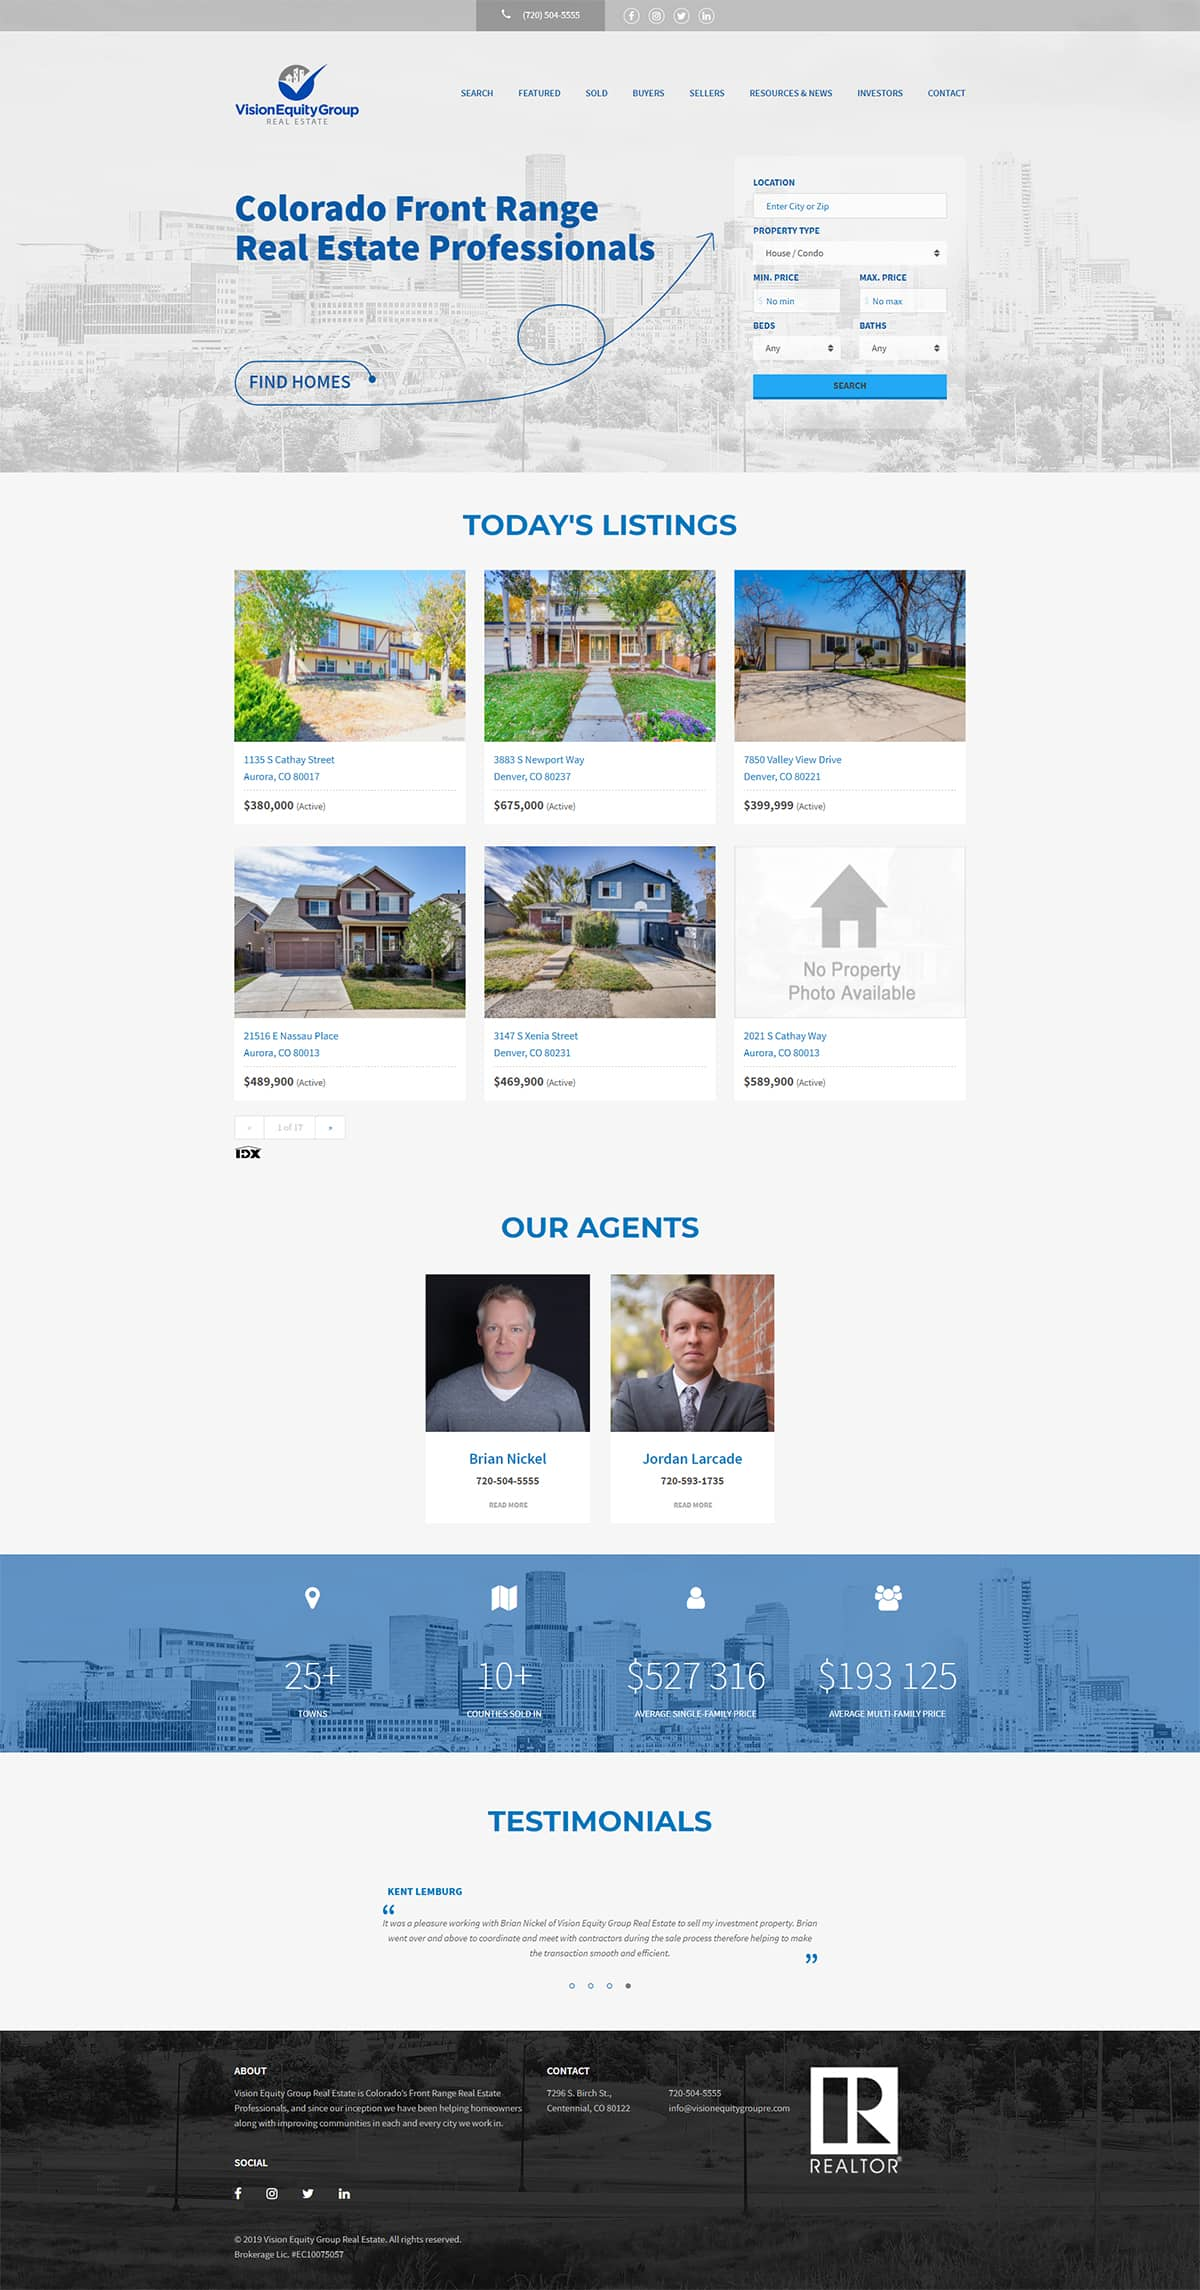 vision equity group real estate full image